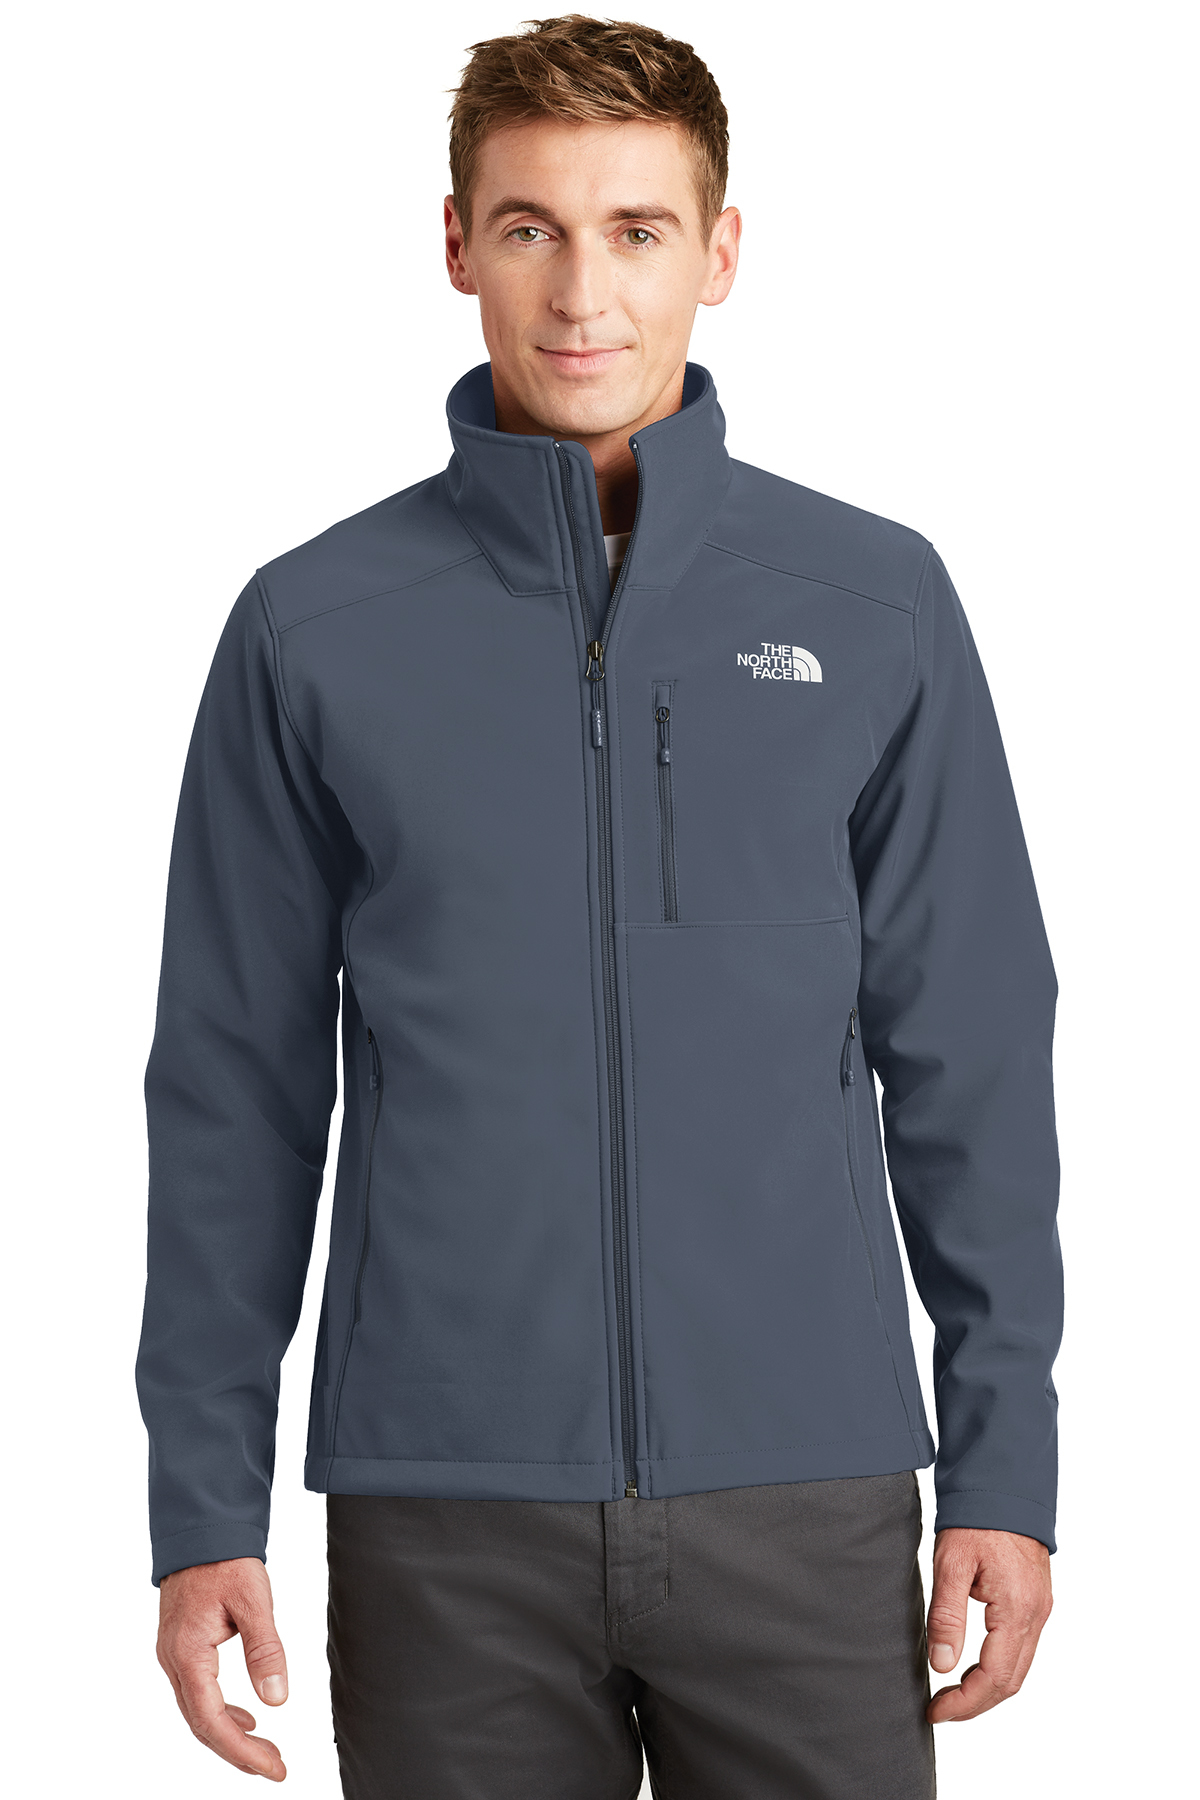 The North Face® NF0A3LGT - Men's Apex Barrier Soft ...